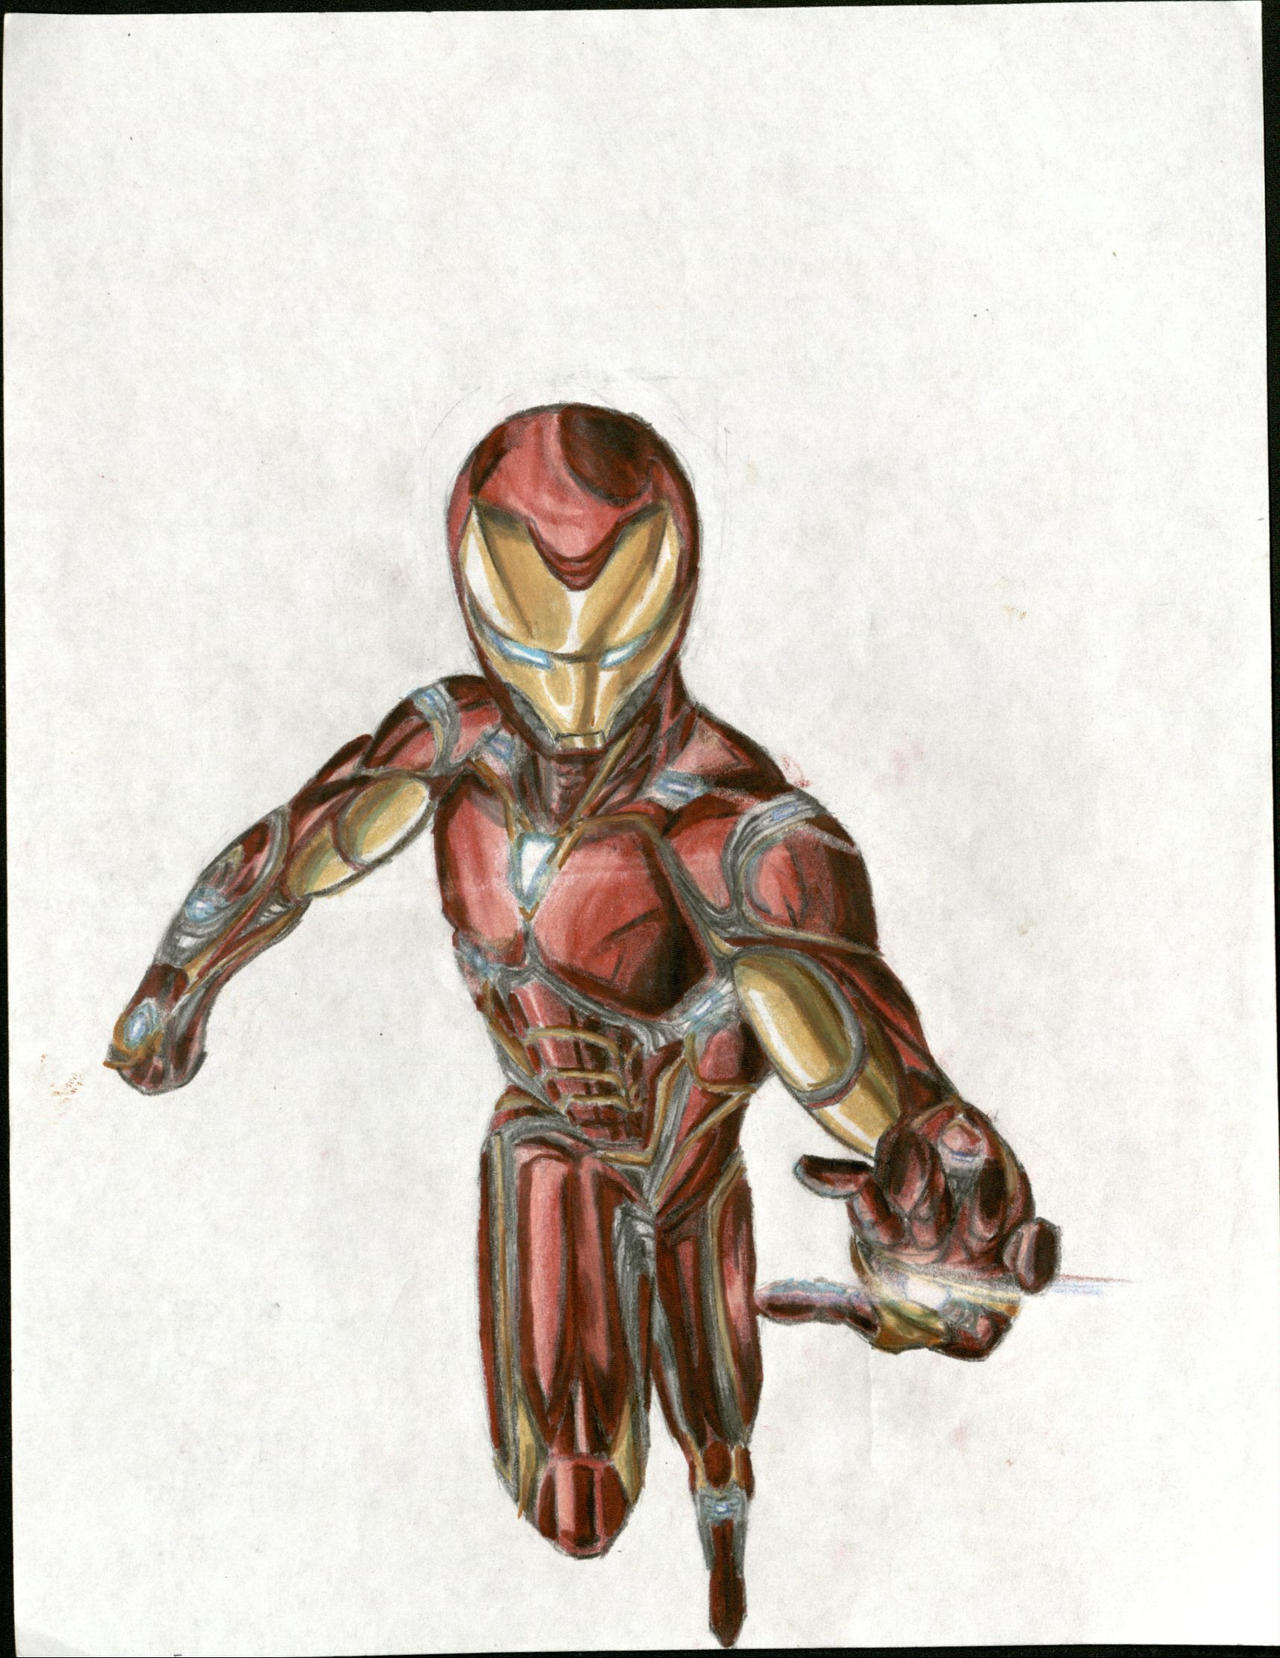 Iron Man Mark 51 by PLASMA-GIRL on DeviantArt